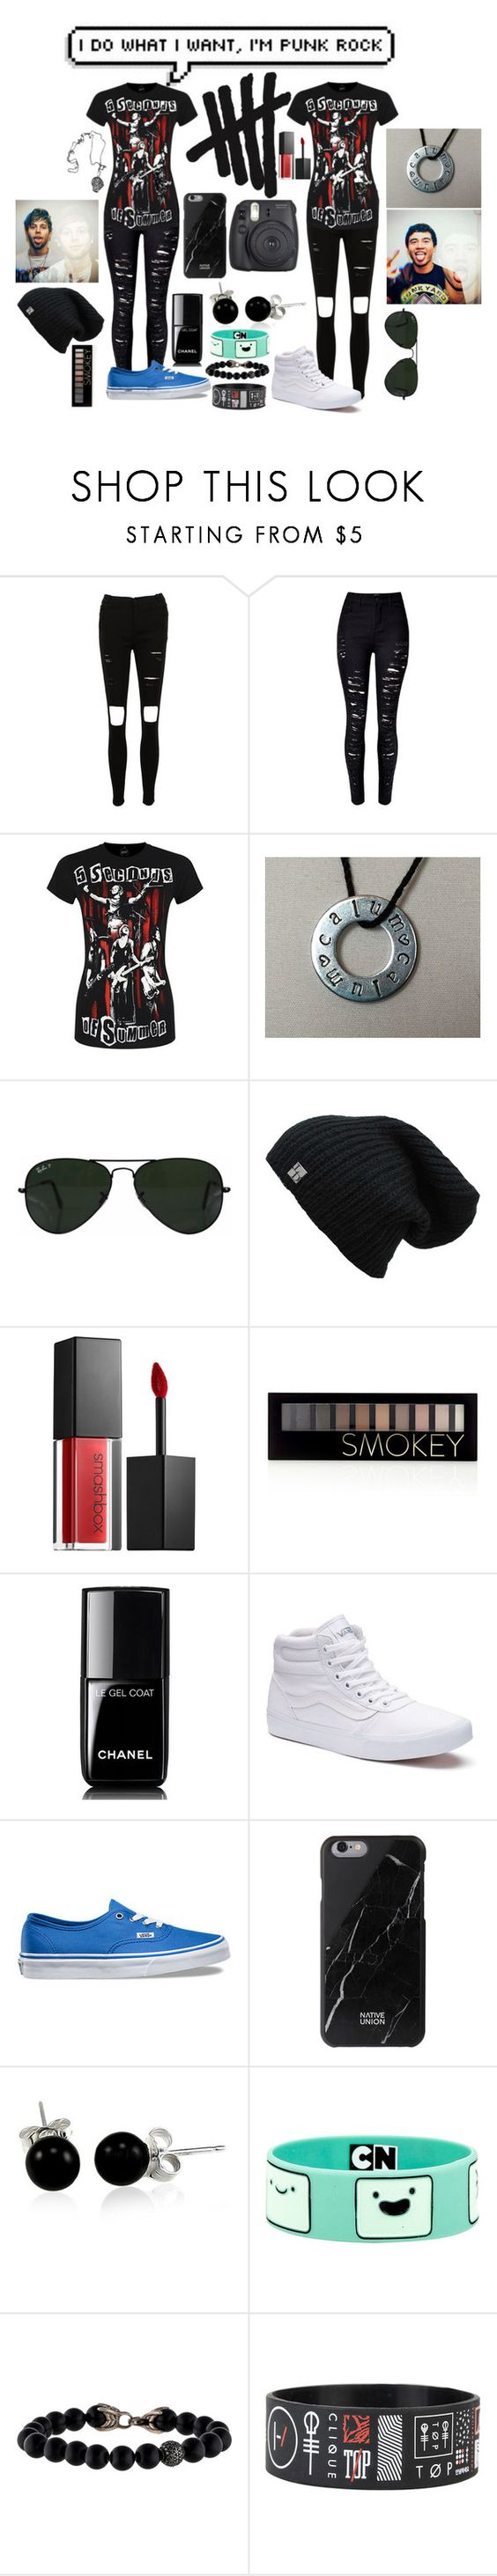 """5sos Concert with Aspen"" by fangirlfuture ❤ liked on Polyvore featuring Ray-Ban, Smashbox, Forever 21, Chanel, Vans, Native Union, Bling Jewelry and David Yurman"